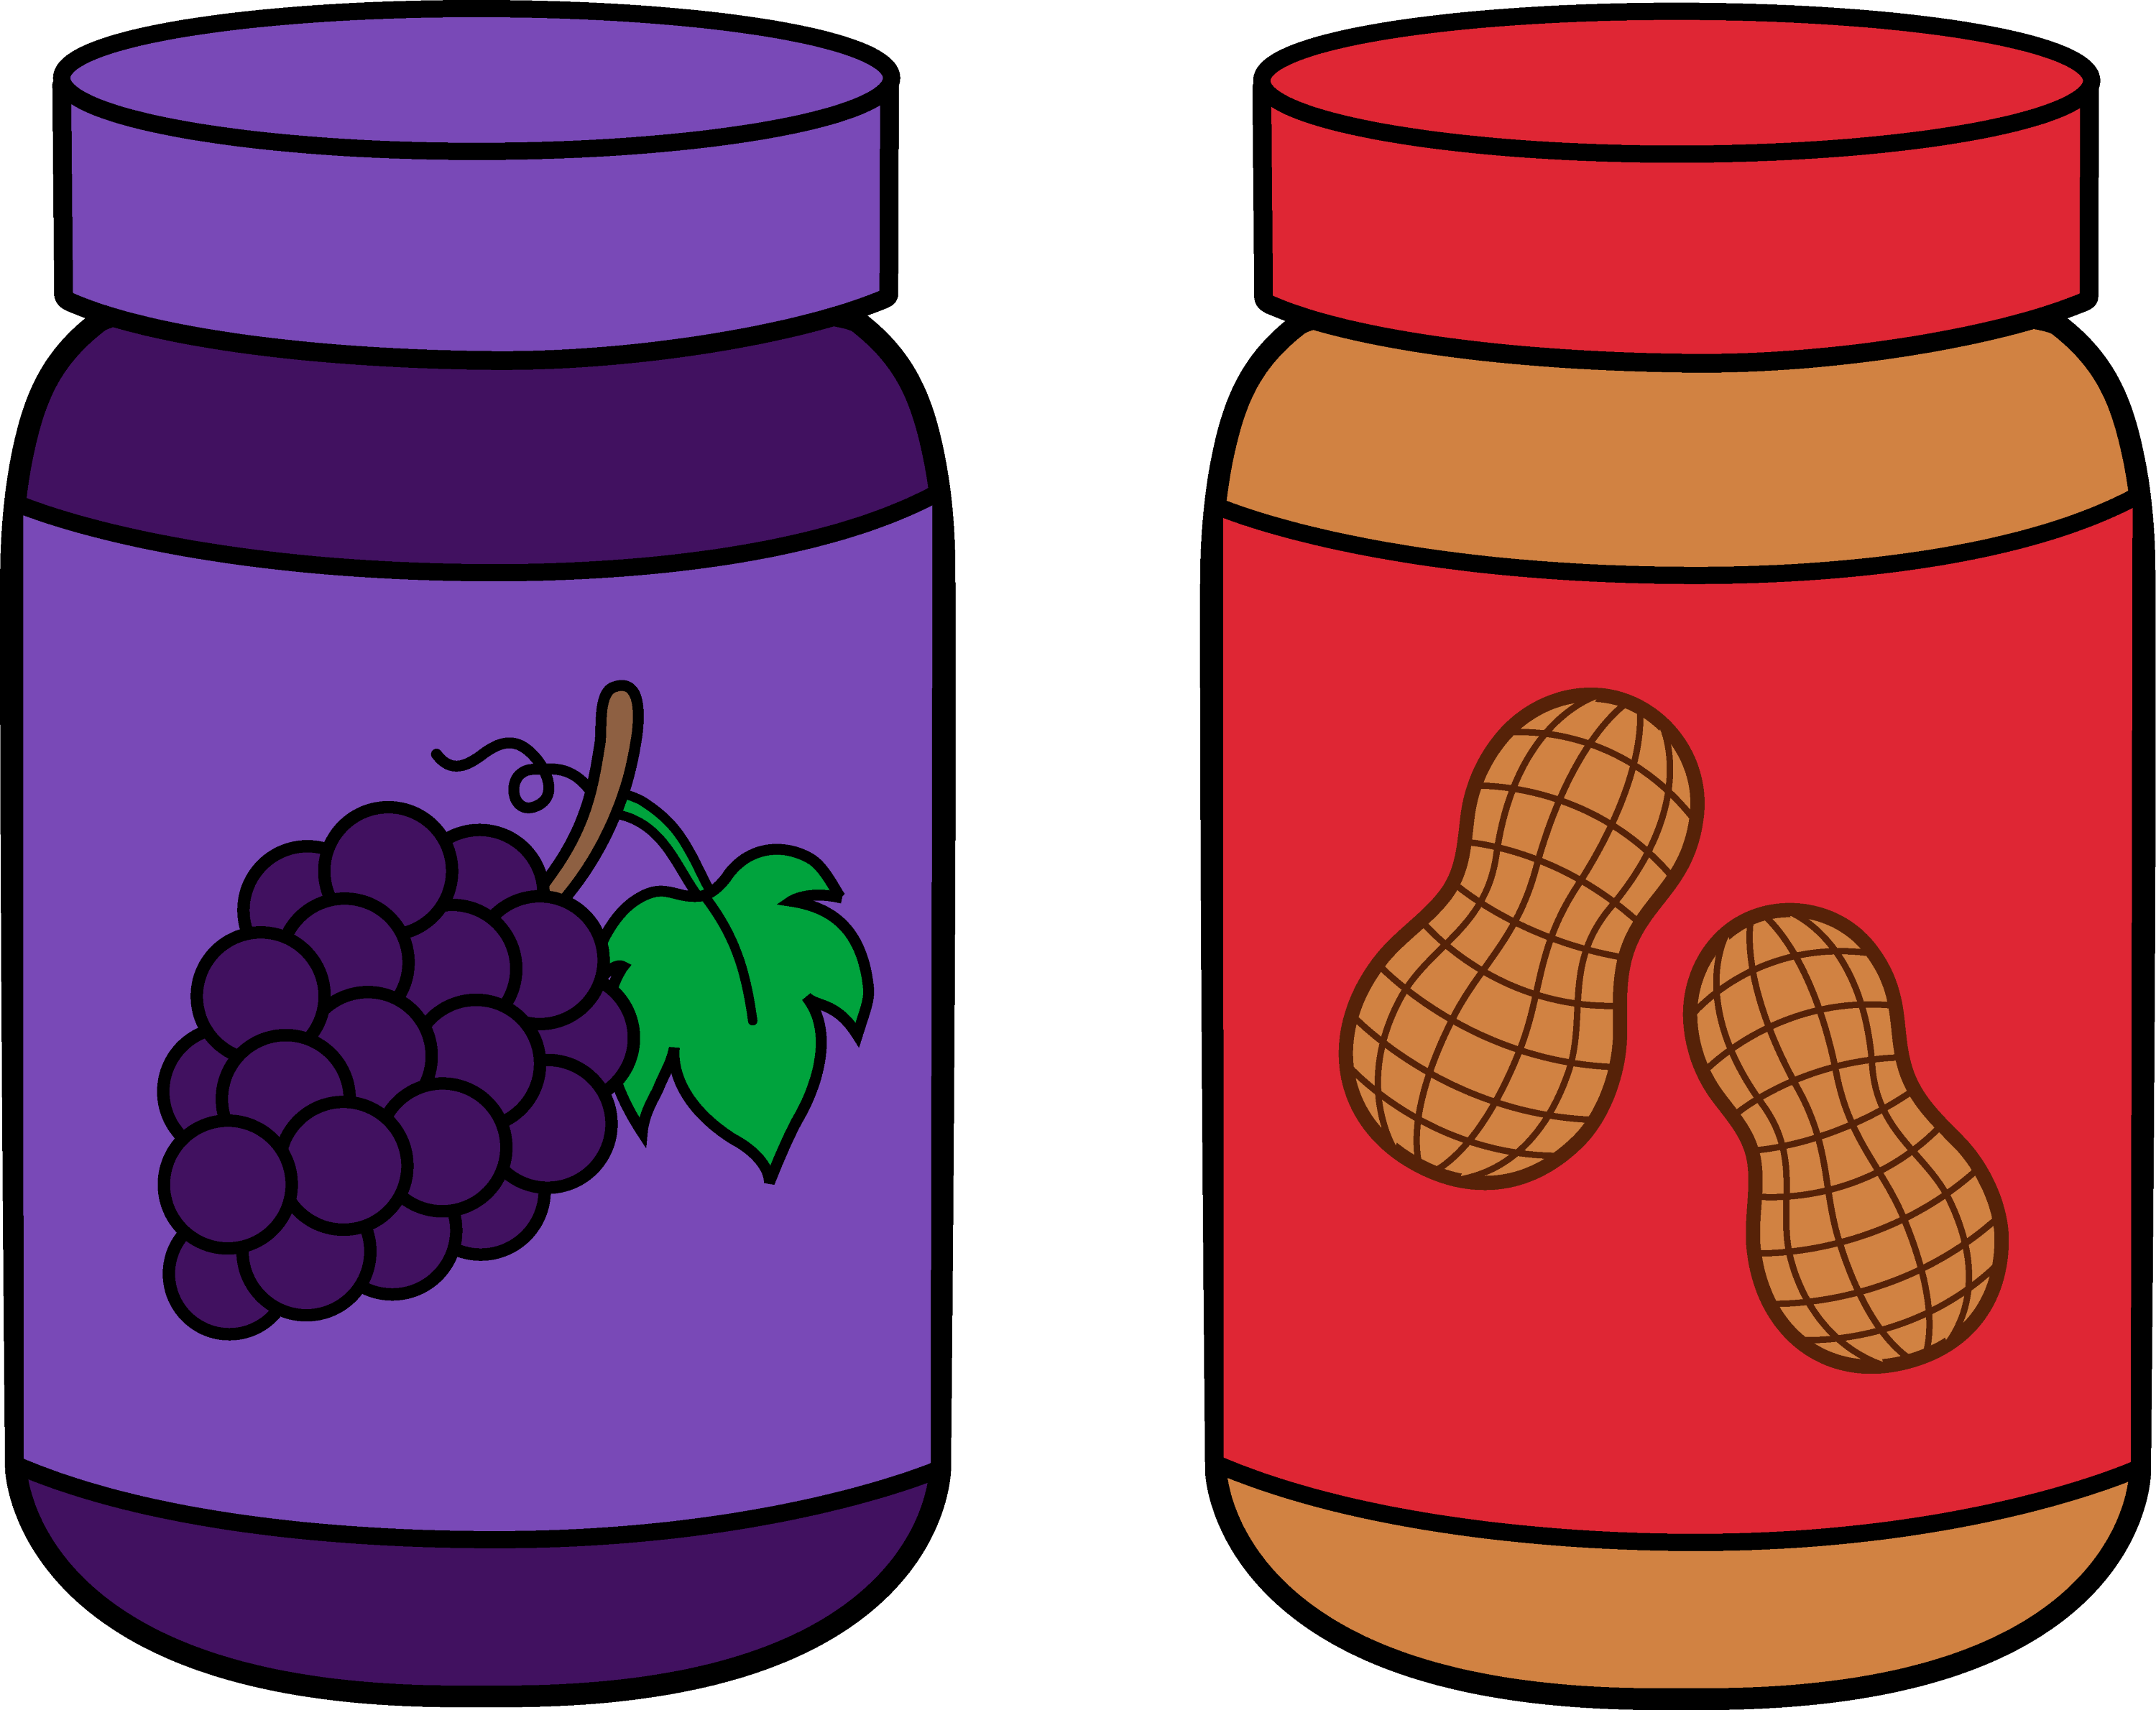 jars of peanut butter and jelly free clip art rh sweetclipart com peanut butter and jelly sandwich clip art free Peanut Butter and Jelly Sandwich